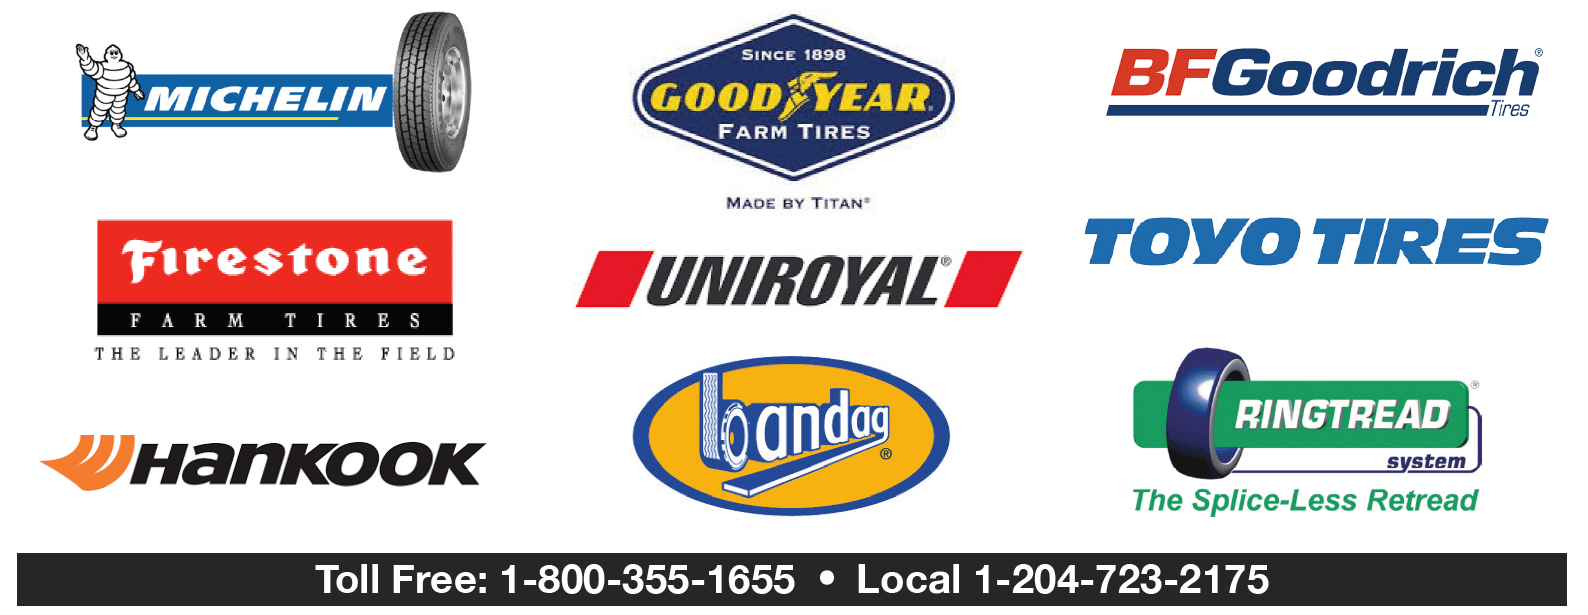 Logos of tire brands available